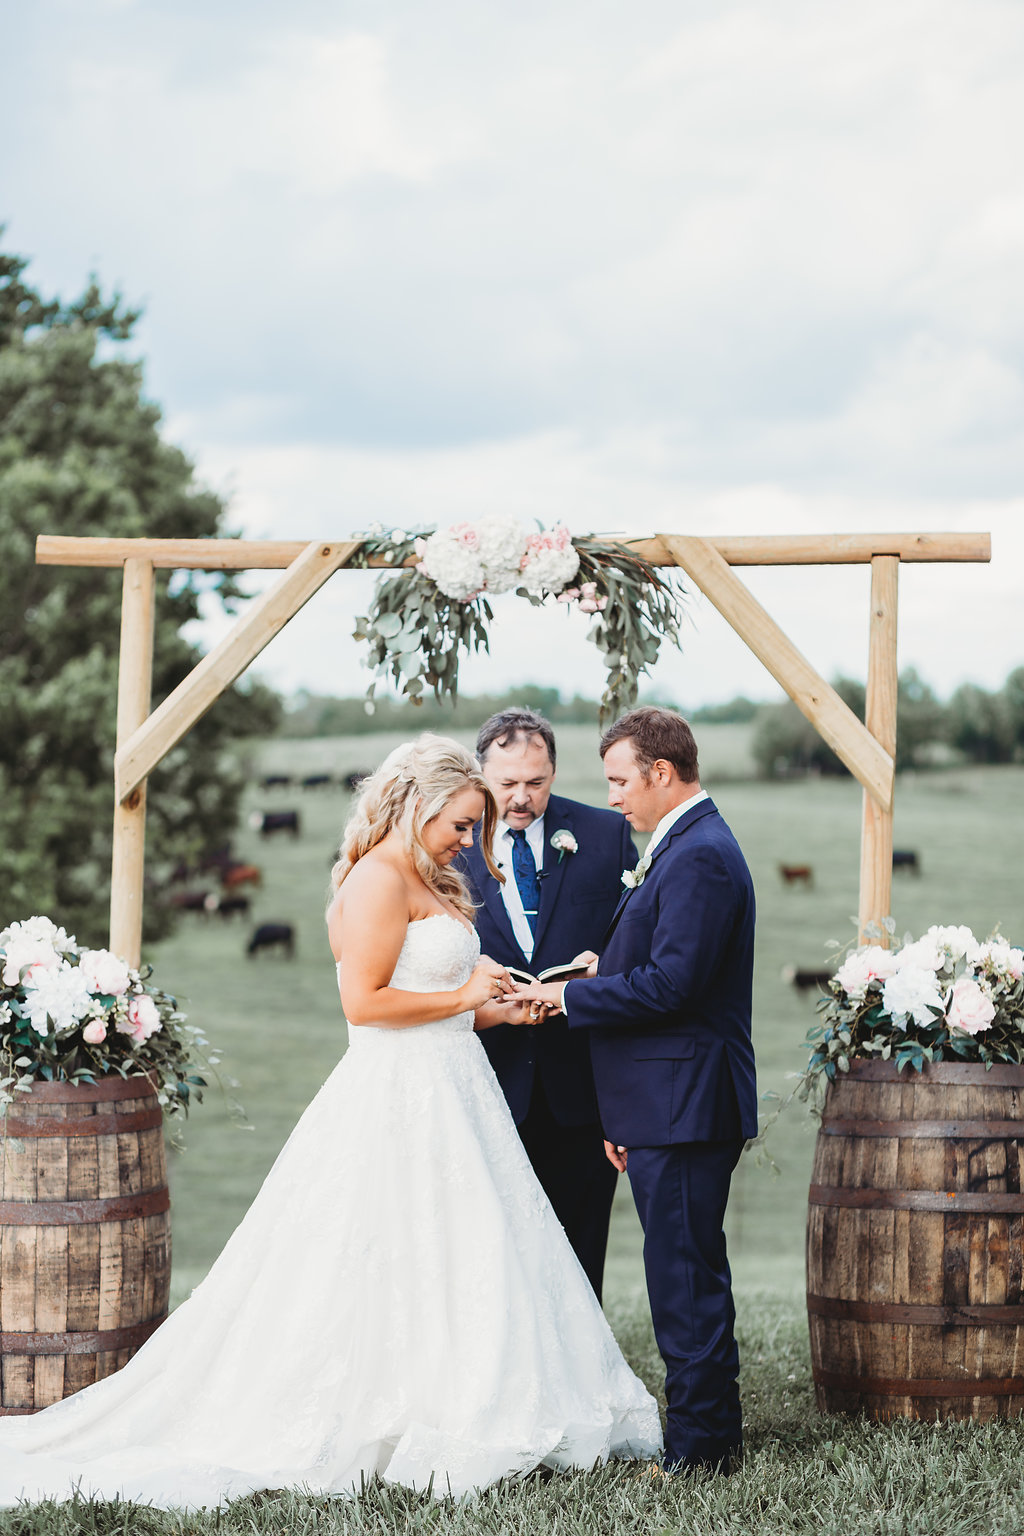 Country Glam Wedding Ceremony at Warrenwood Manor in Kentucky